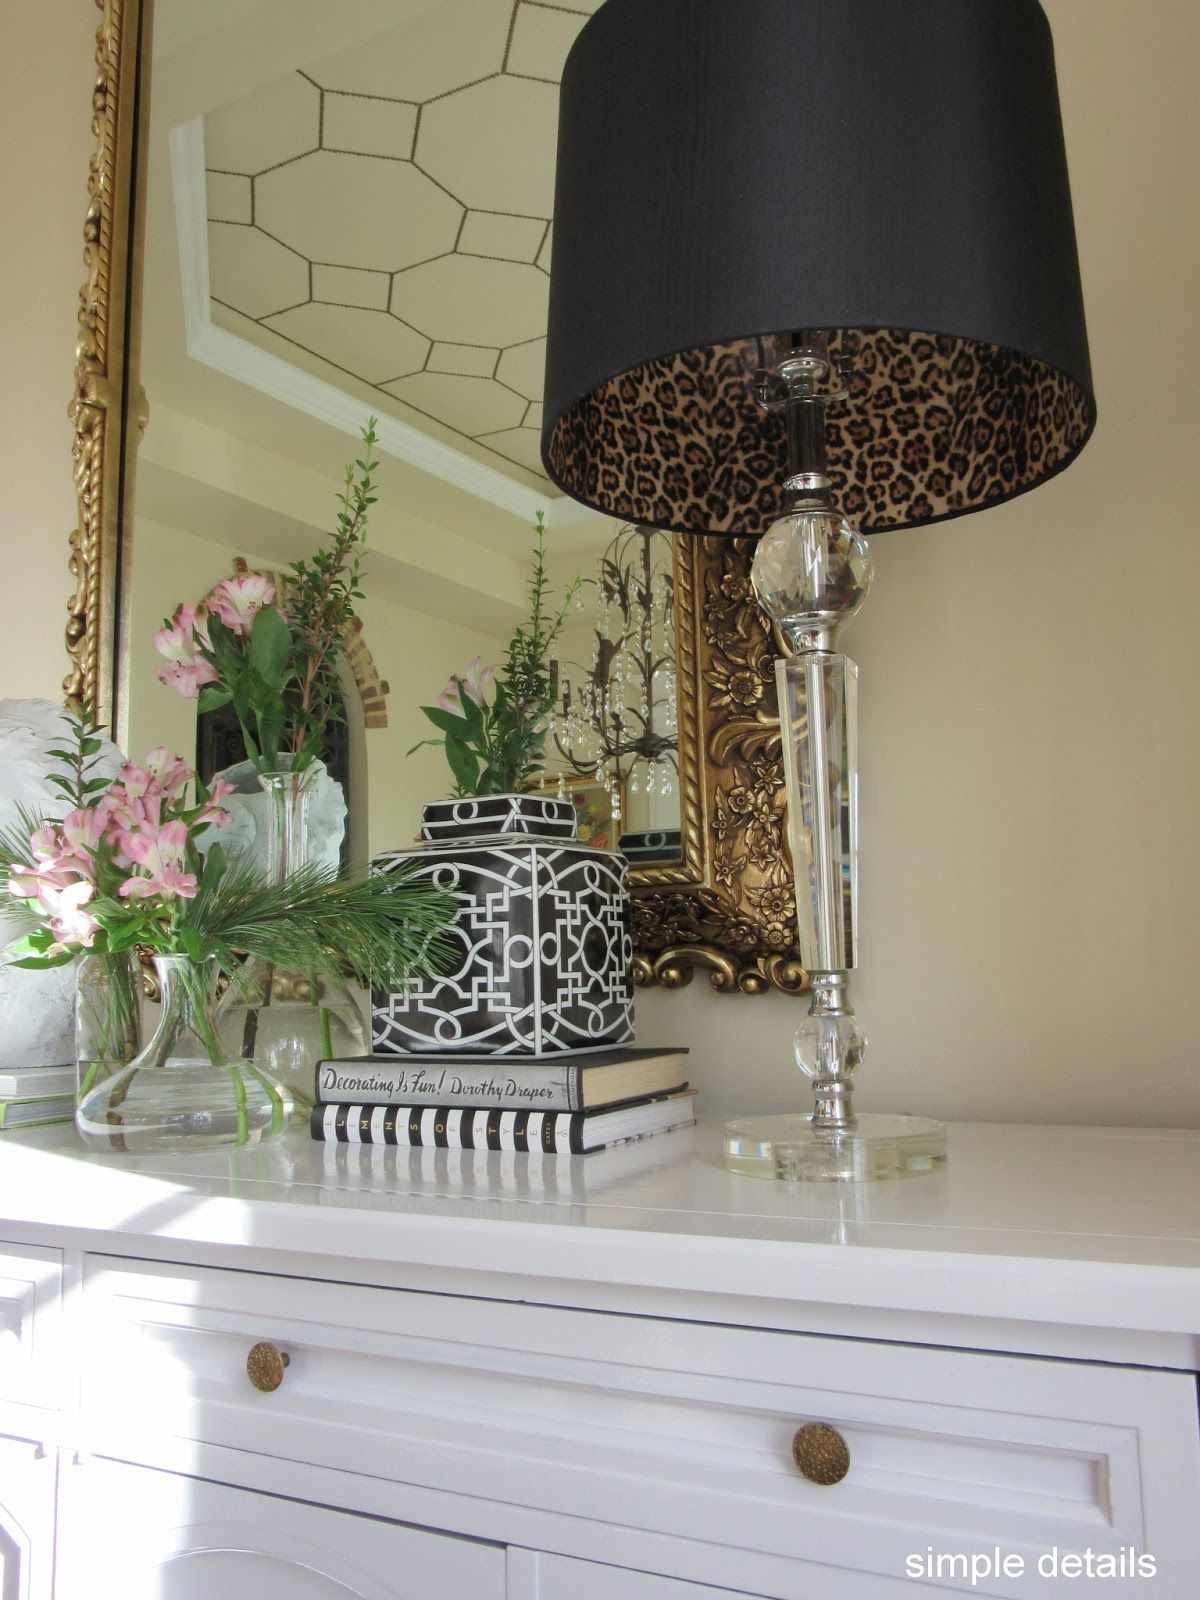 Simple details diy lamp shade with leopard print lining home simple details diy lamp shade with leopard print lining aloadofball Images